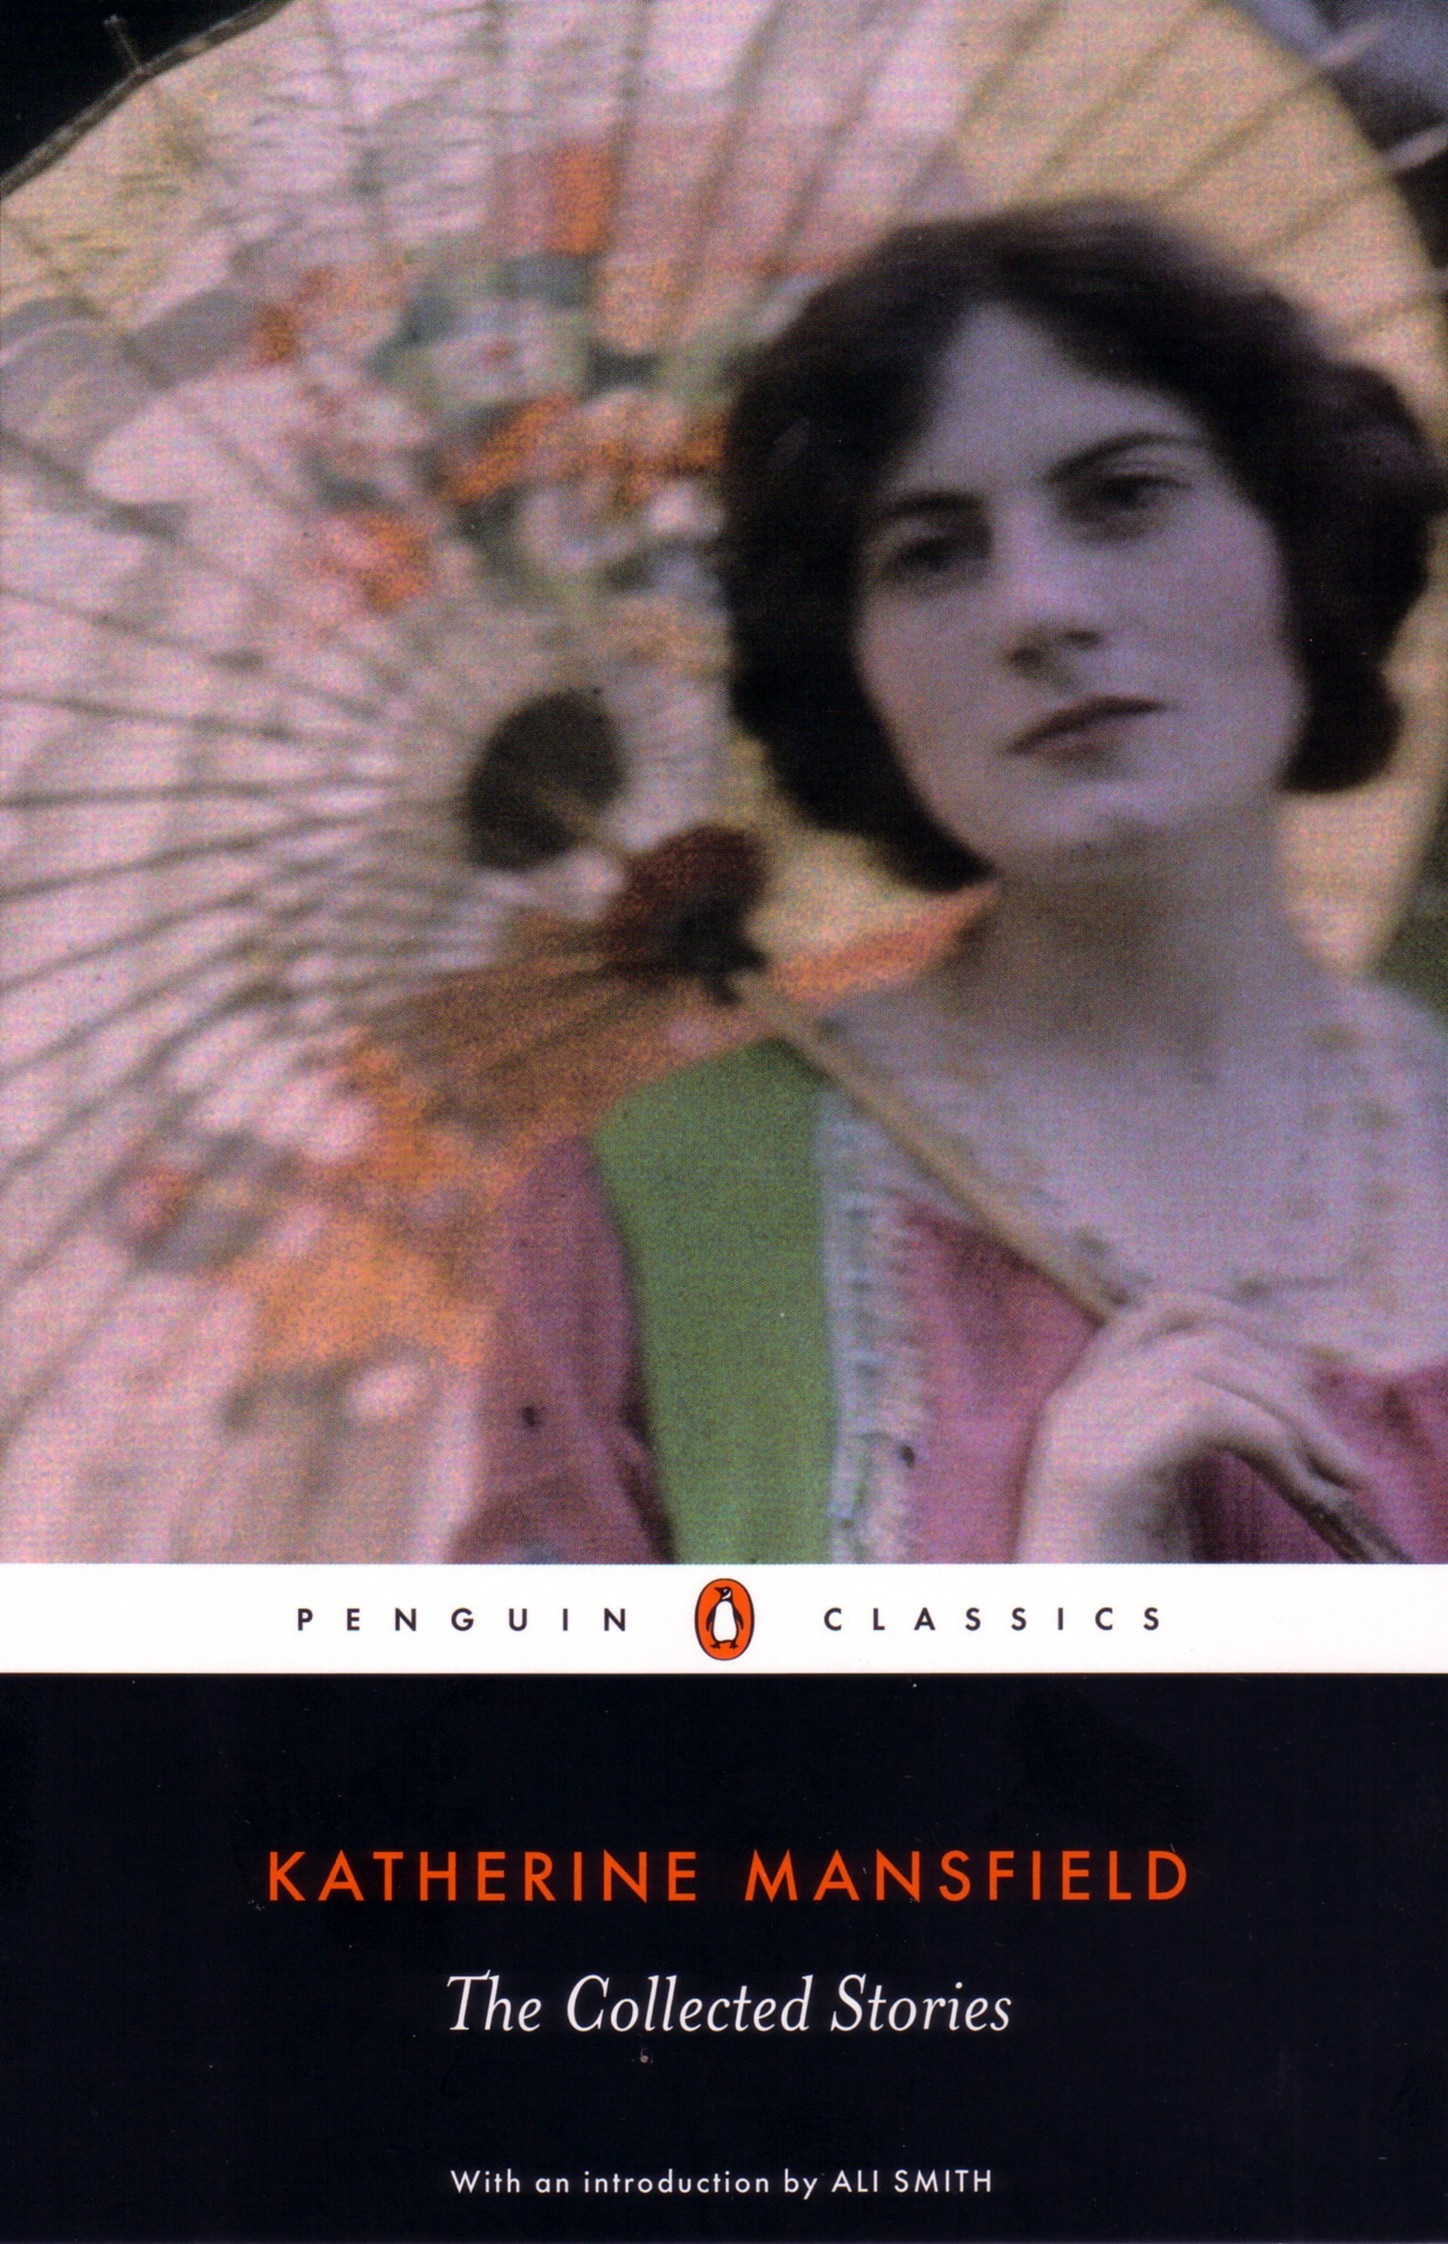 a literary analysis of the dolls house by katherine mansfield A doll's house: theme analysis, free study guides and book notes including comprehensive chapter analysis, complete summary analysis, author biography information, character profiles, theme analysis, metaphor analysis, and top ten quotes on classic literature.